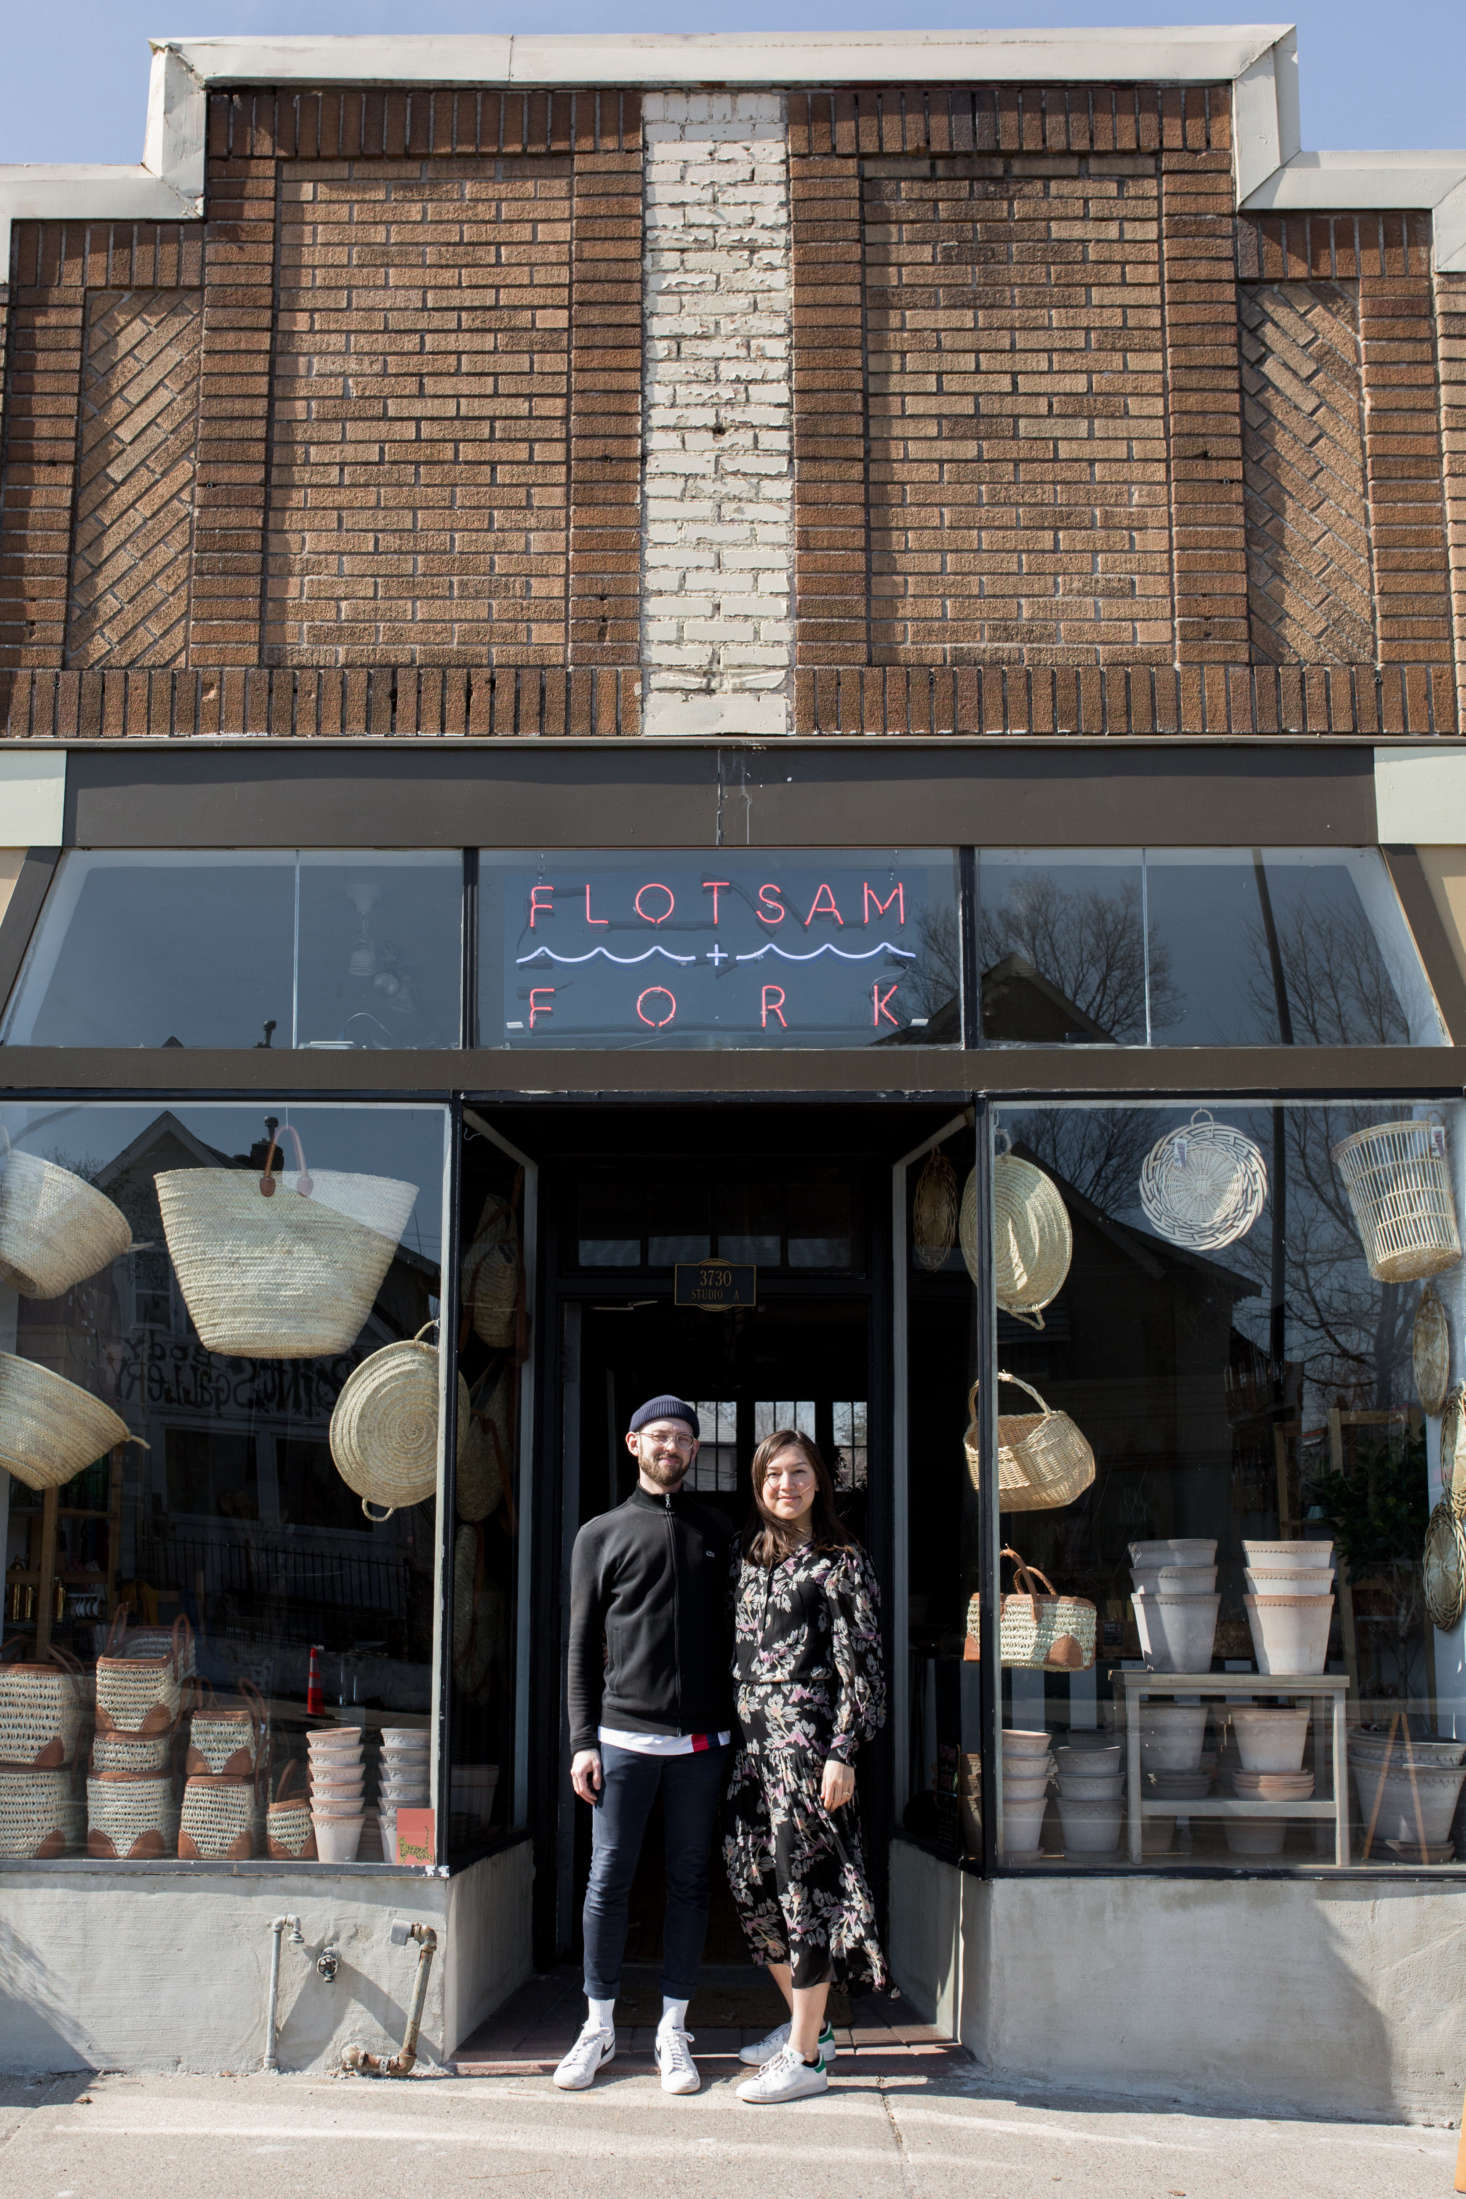 Owners Joe Hasler and Adrianna Fie frequently travel abroad in search of one-off pieces for their shop. &#8